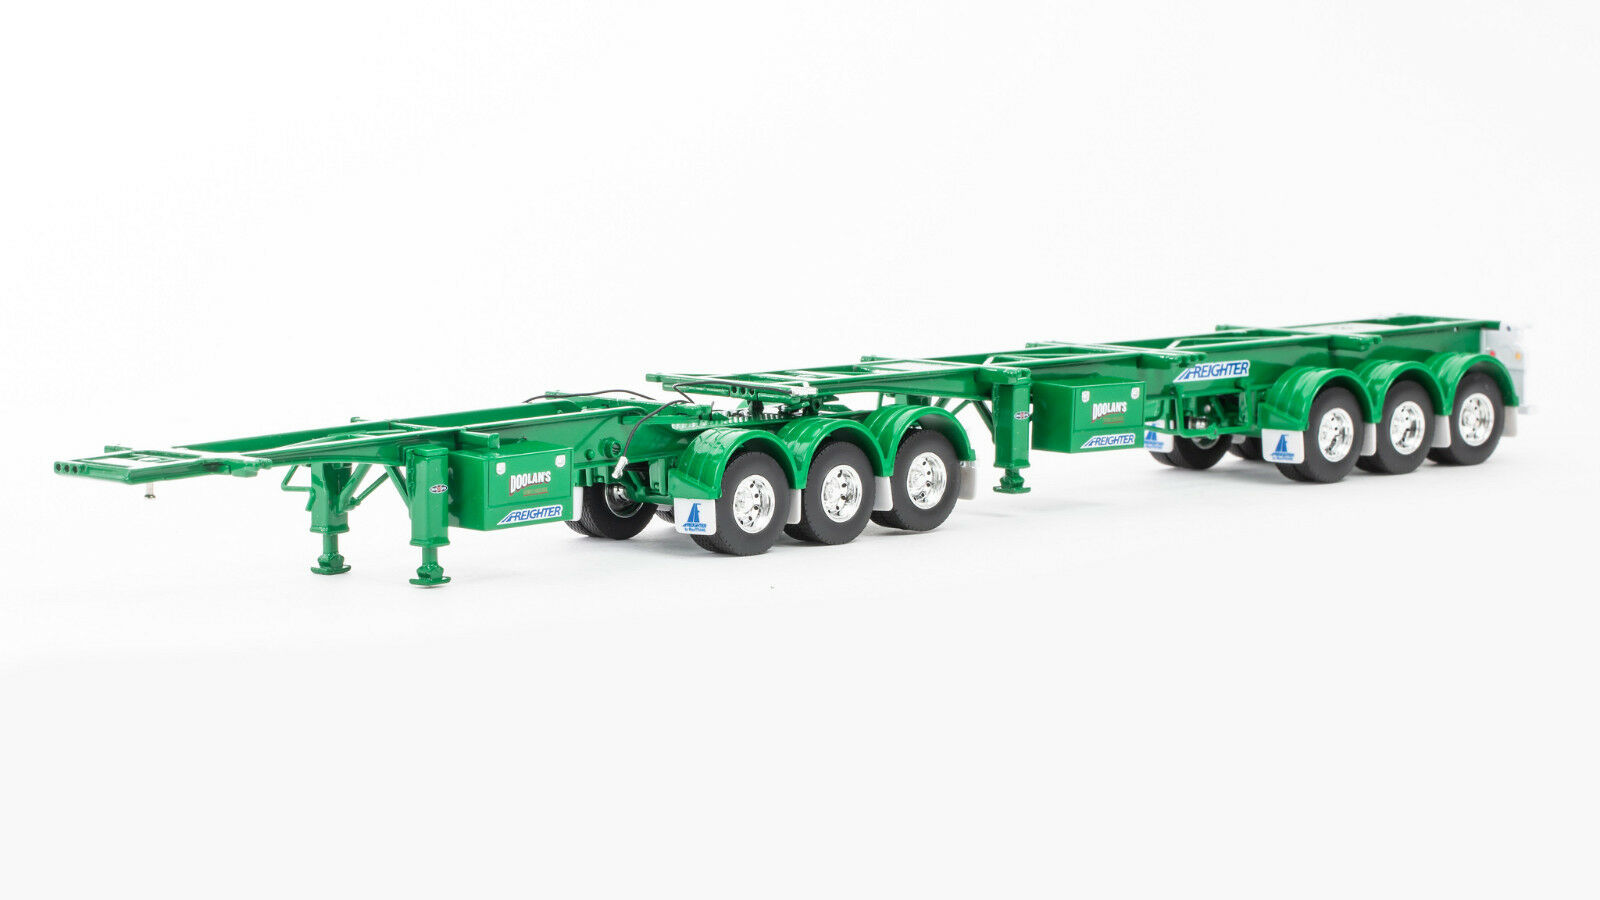 Freighter - Skel B-Double Trailer Set - Doolans 1 50 Scale By Drake  ZT09156